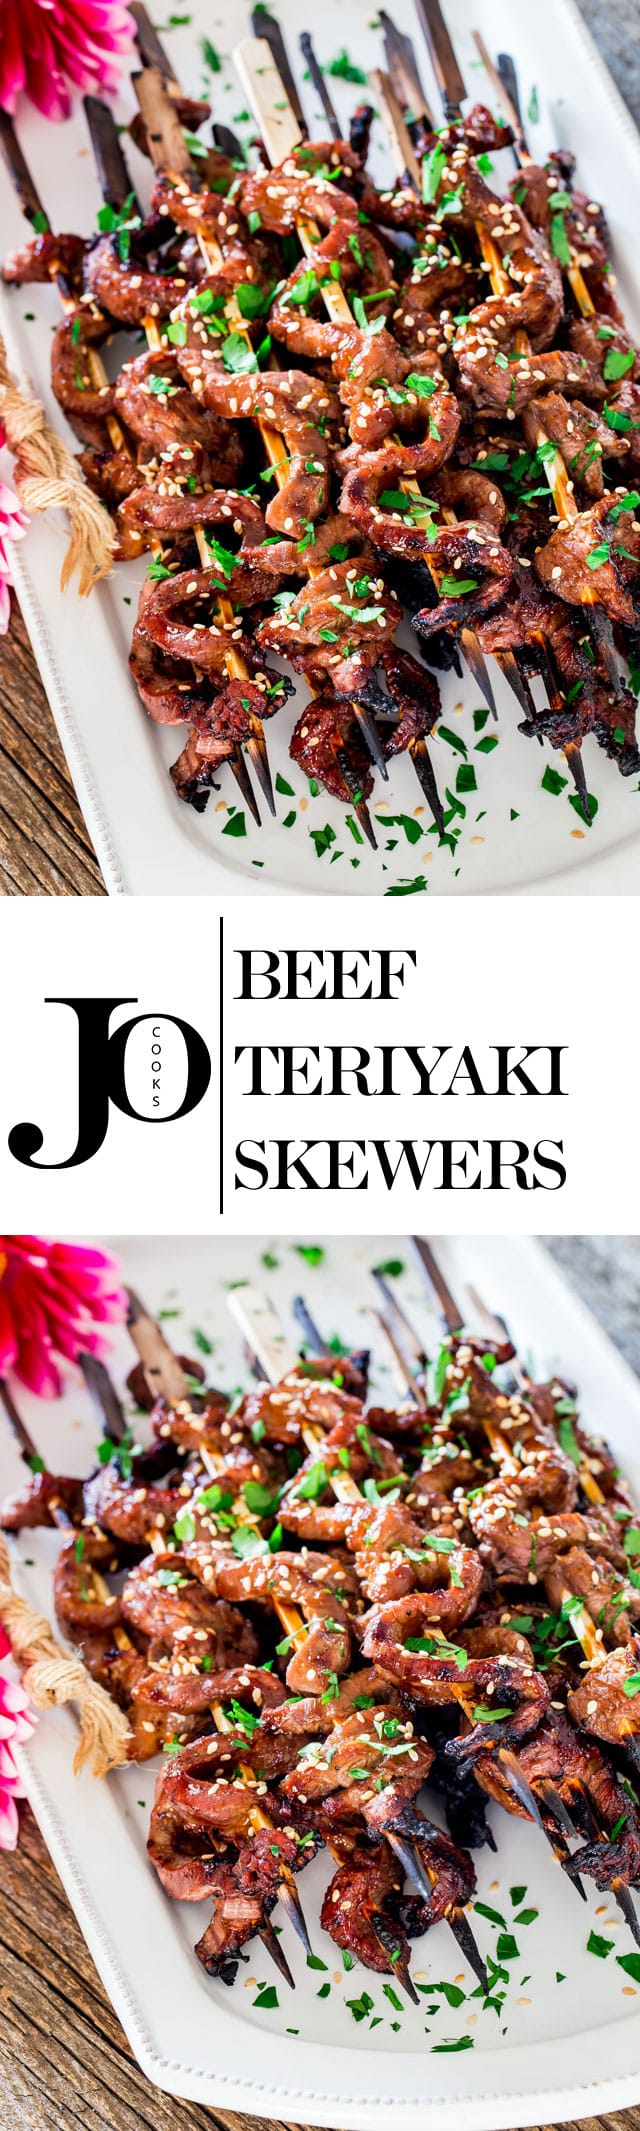 When these Beef Teriyaki Skewers are sizzling on your grill, the aroma will make everyone around you stop what they're doing and come for a taste of these easy to make flank steak skewers with homemade teriyaki sauce. www.jocooks.com #teriyakiskewers